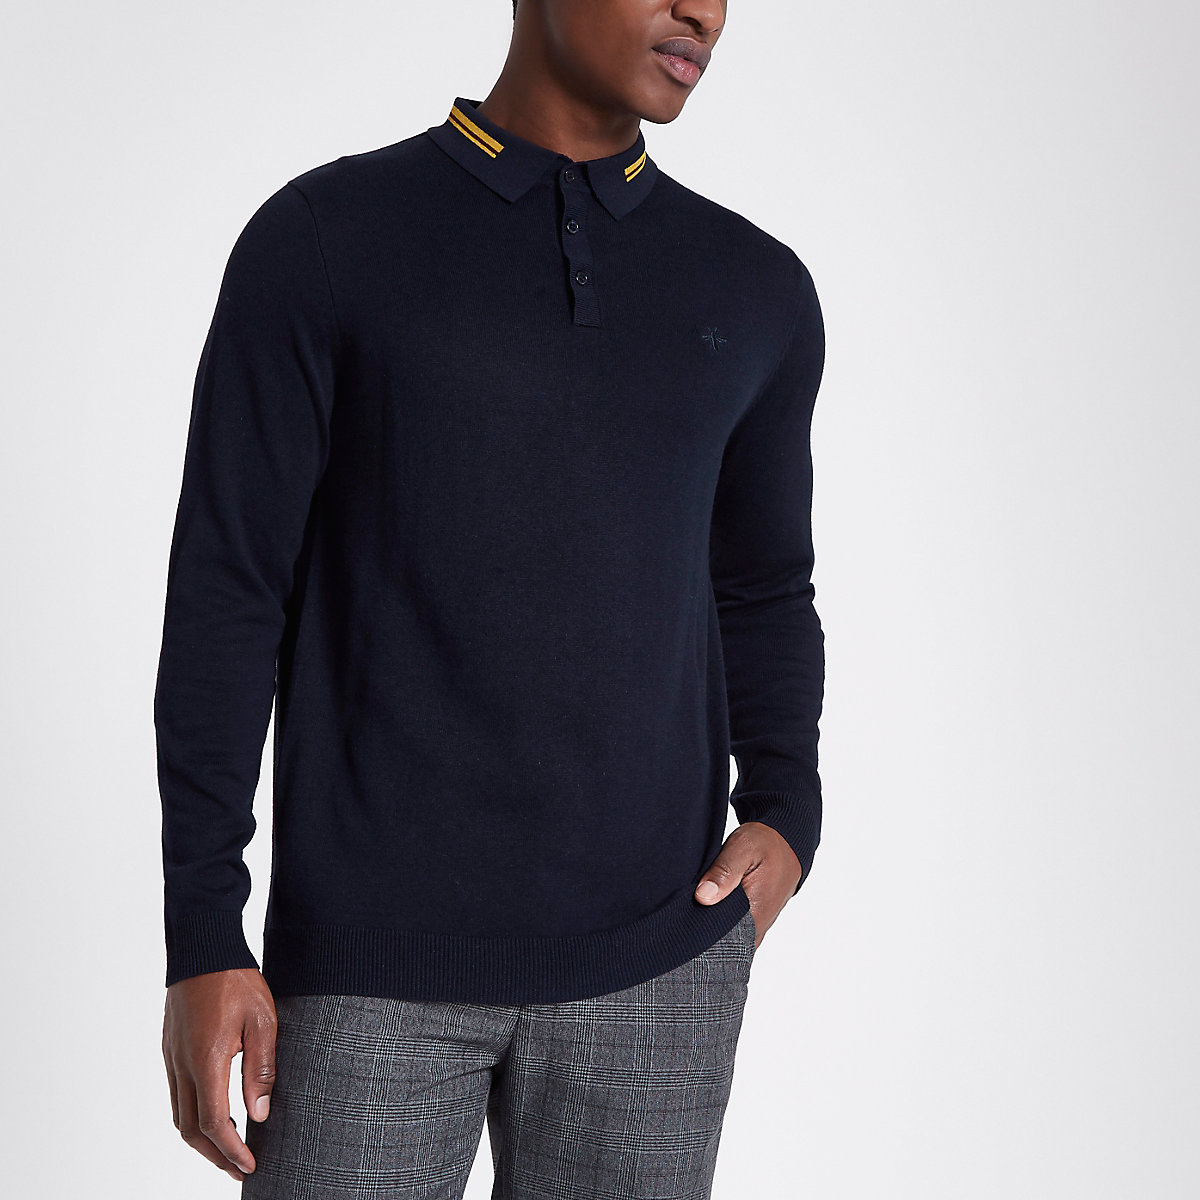 Navy tipped collar slim fit knit polo shirt